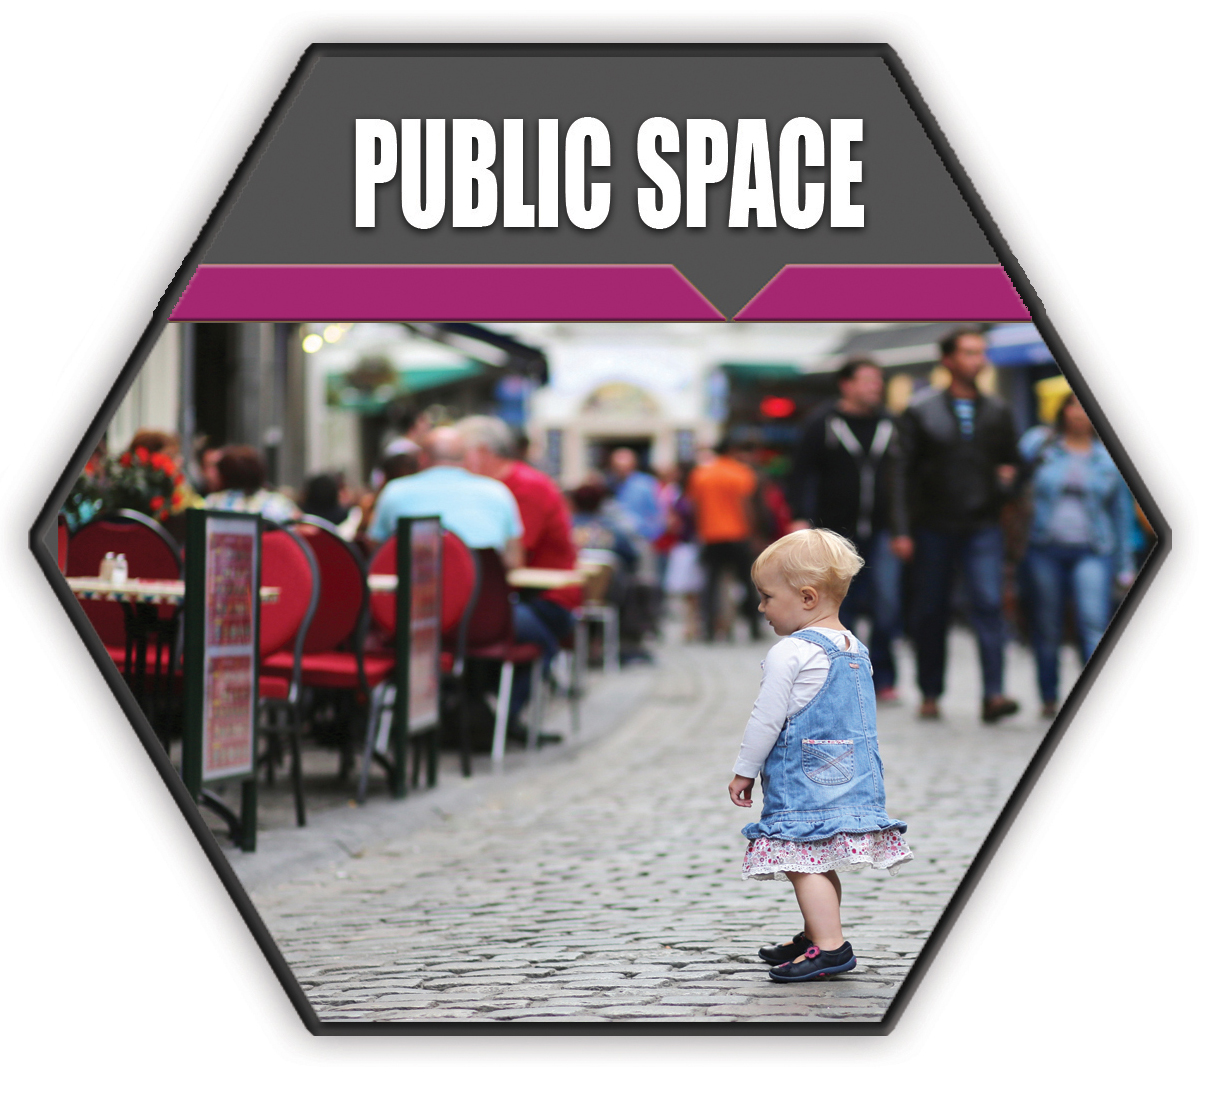 PUBLIC SPACE INDICATORS